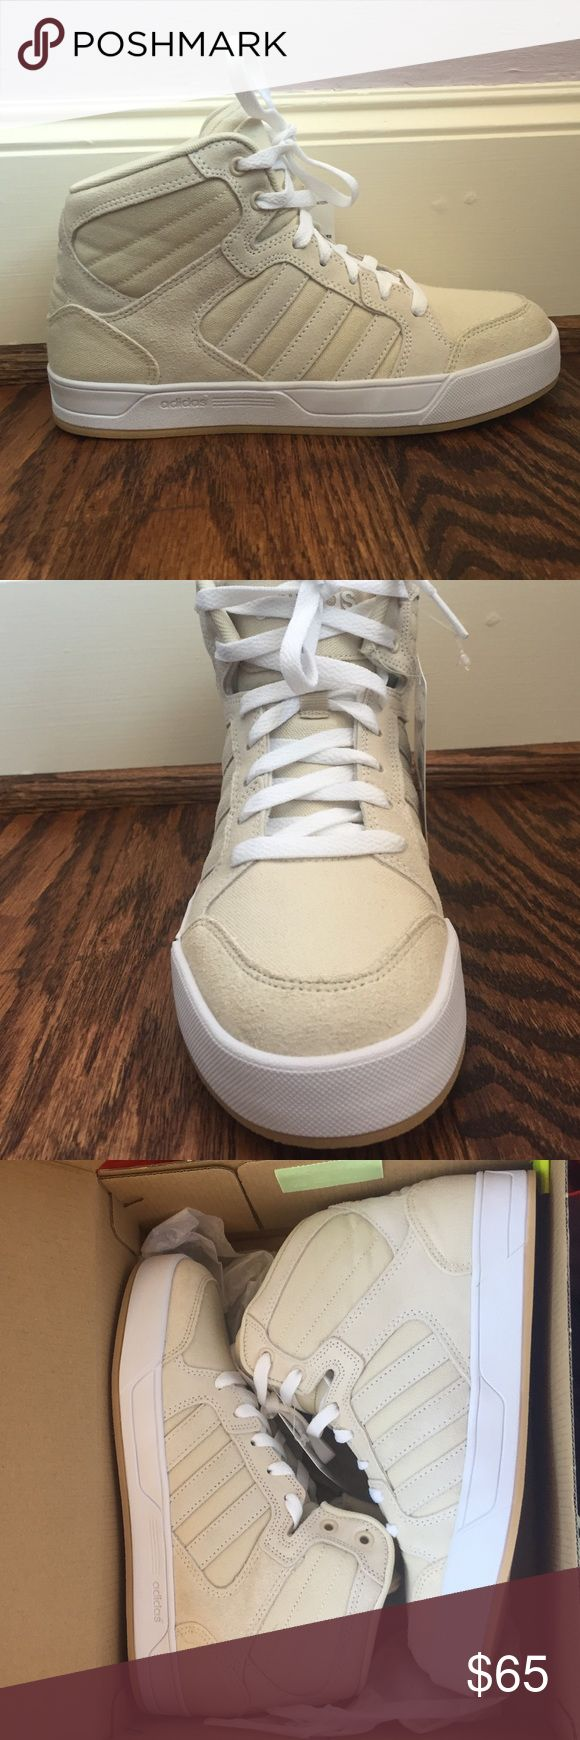 Adidas Neo sneakers Brand new WITH TAGS adidas sneakers size 7!!! Super fun high tops would be a great gift for someone! Adidas Shoes Sneakers